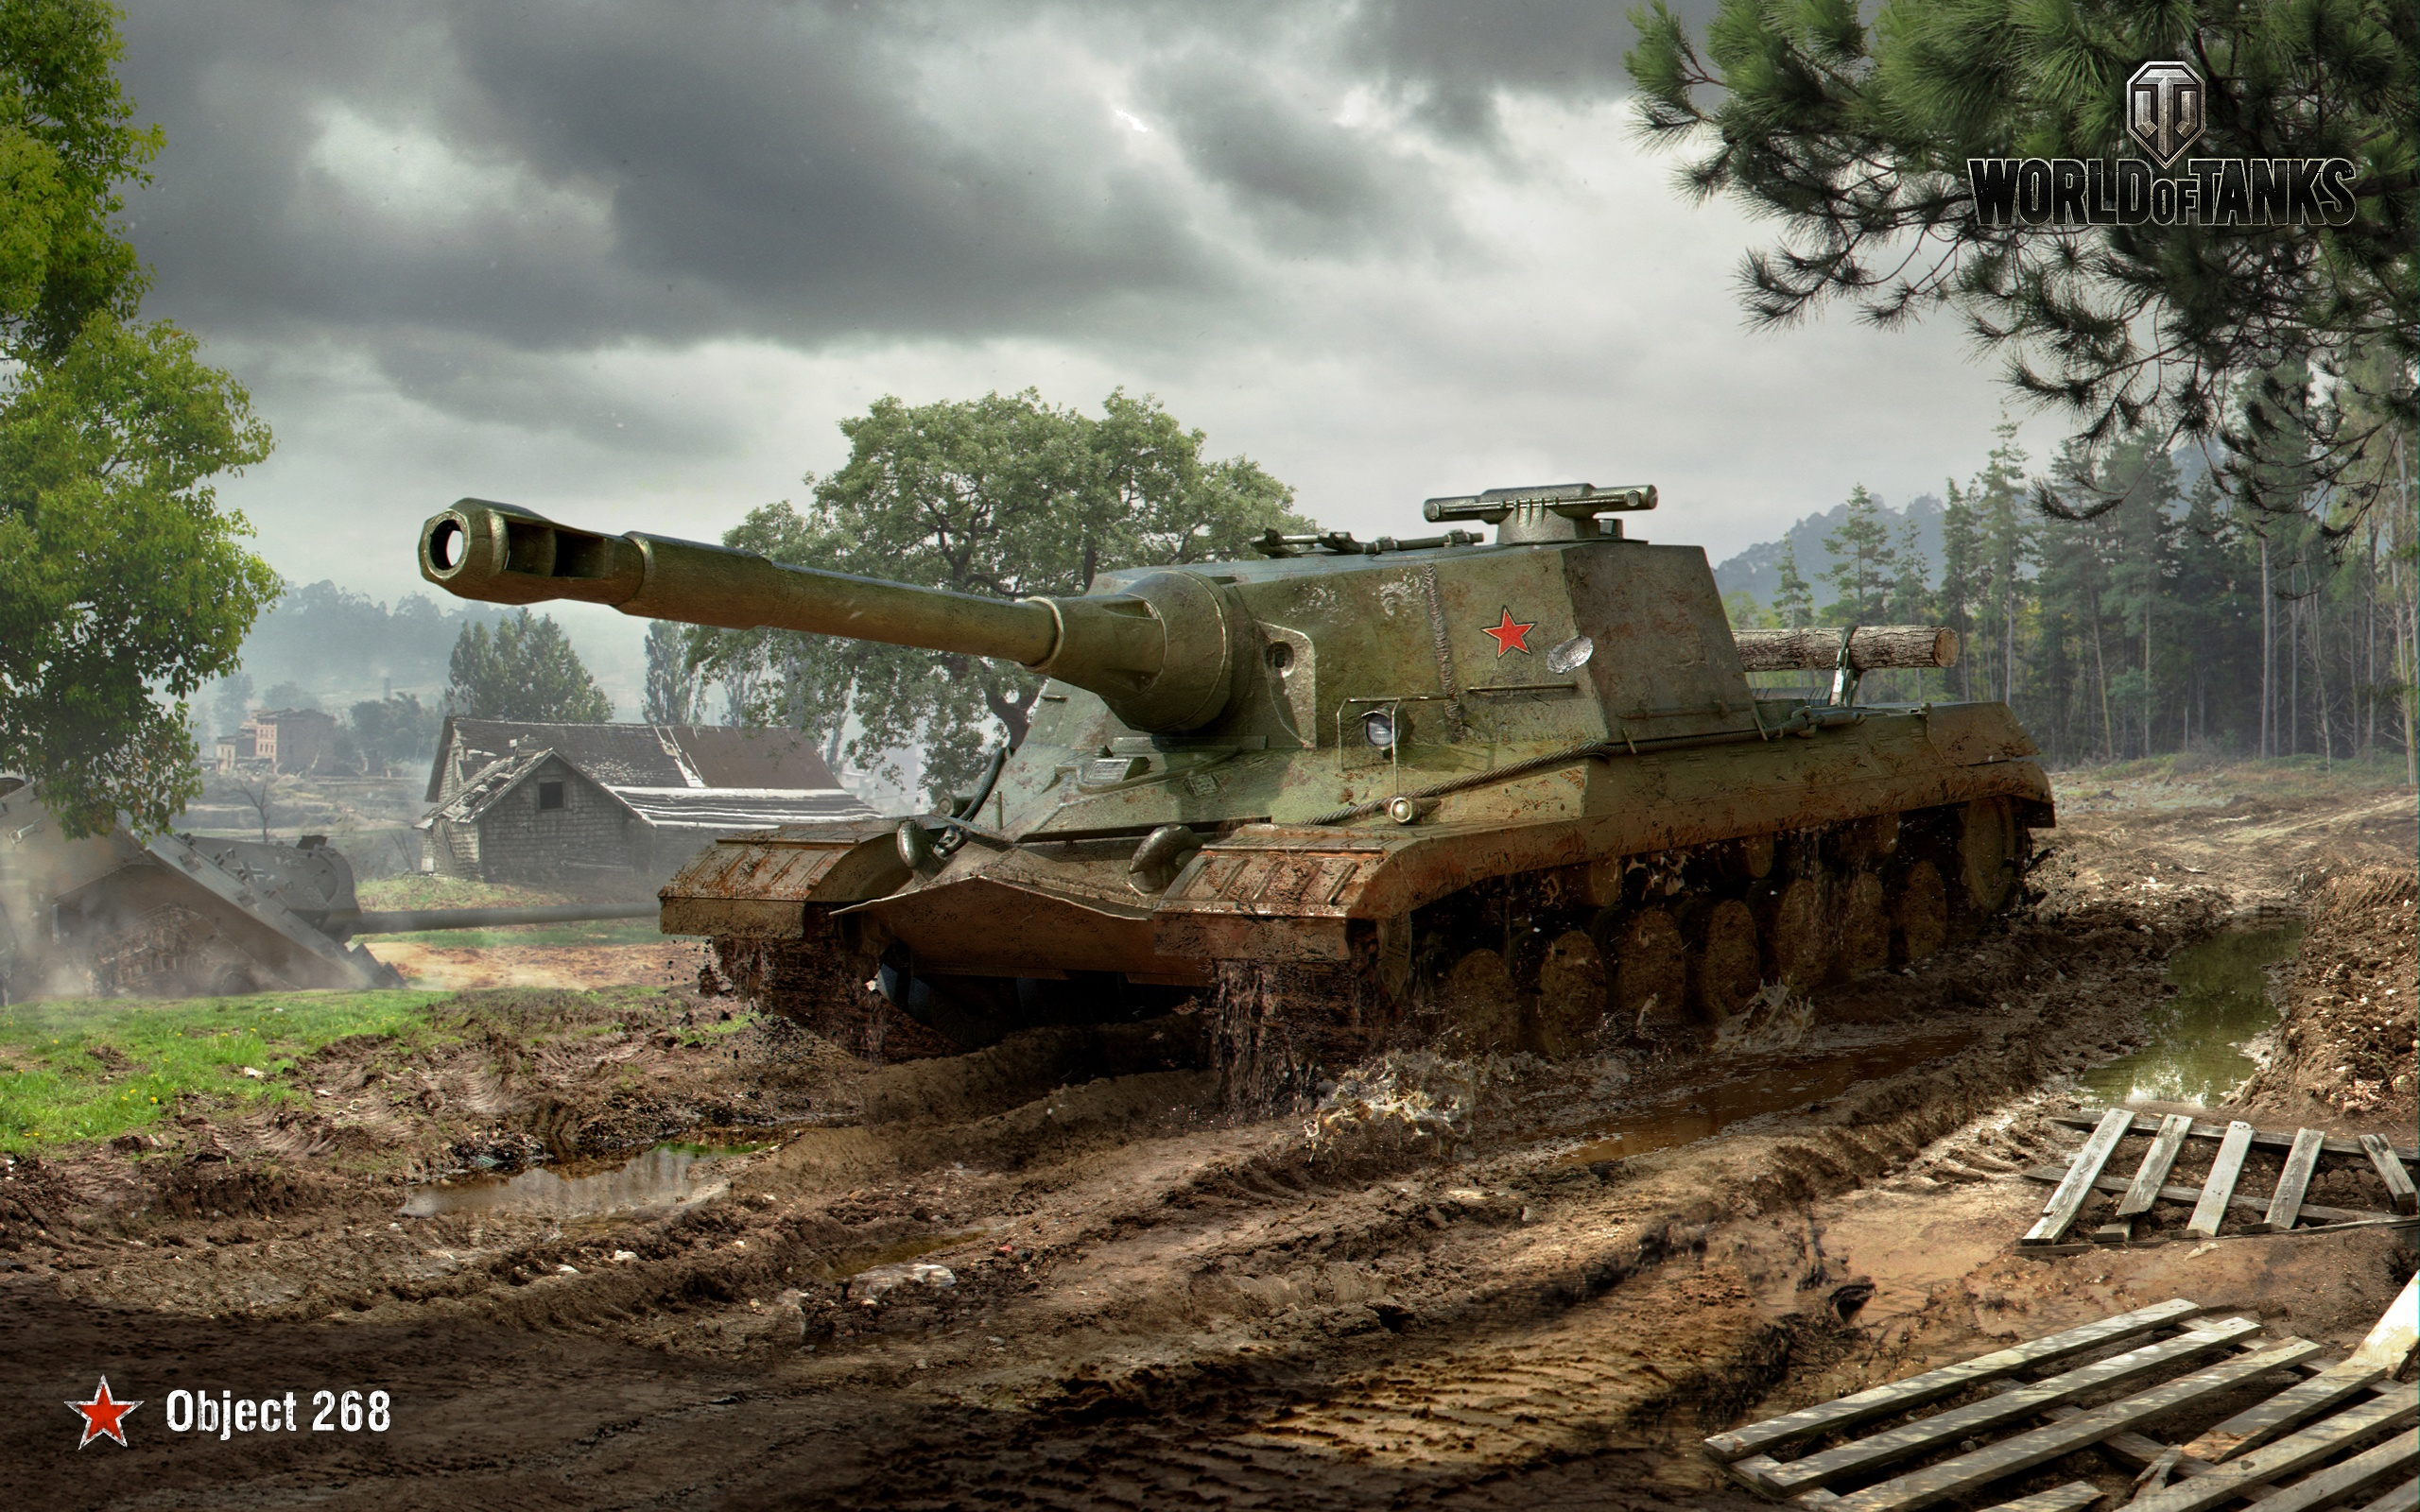 object 268 world of tanks wallpapers in jpg format for free download